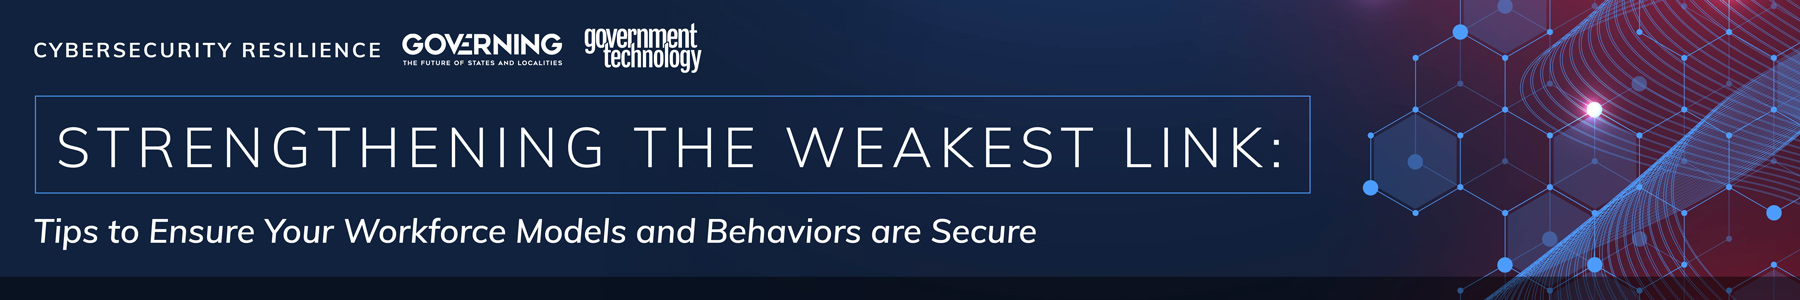 Strengthening the Weakest Link: Tips to Ensure Your Workforce Models and Behaviors are Secure